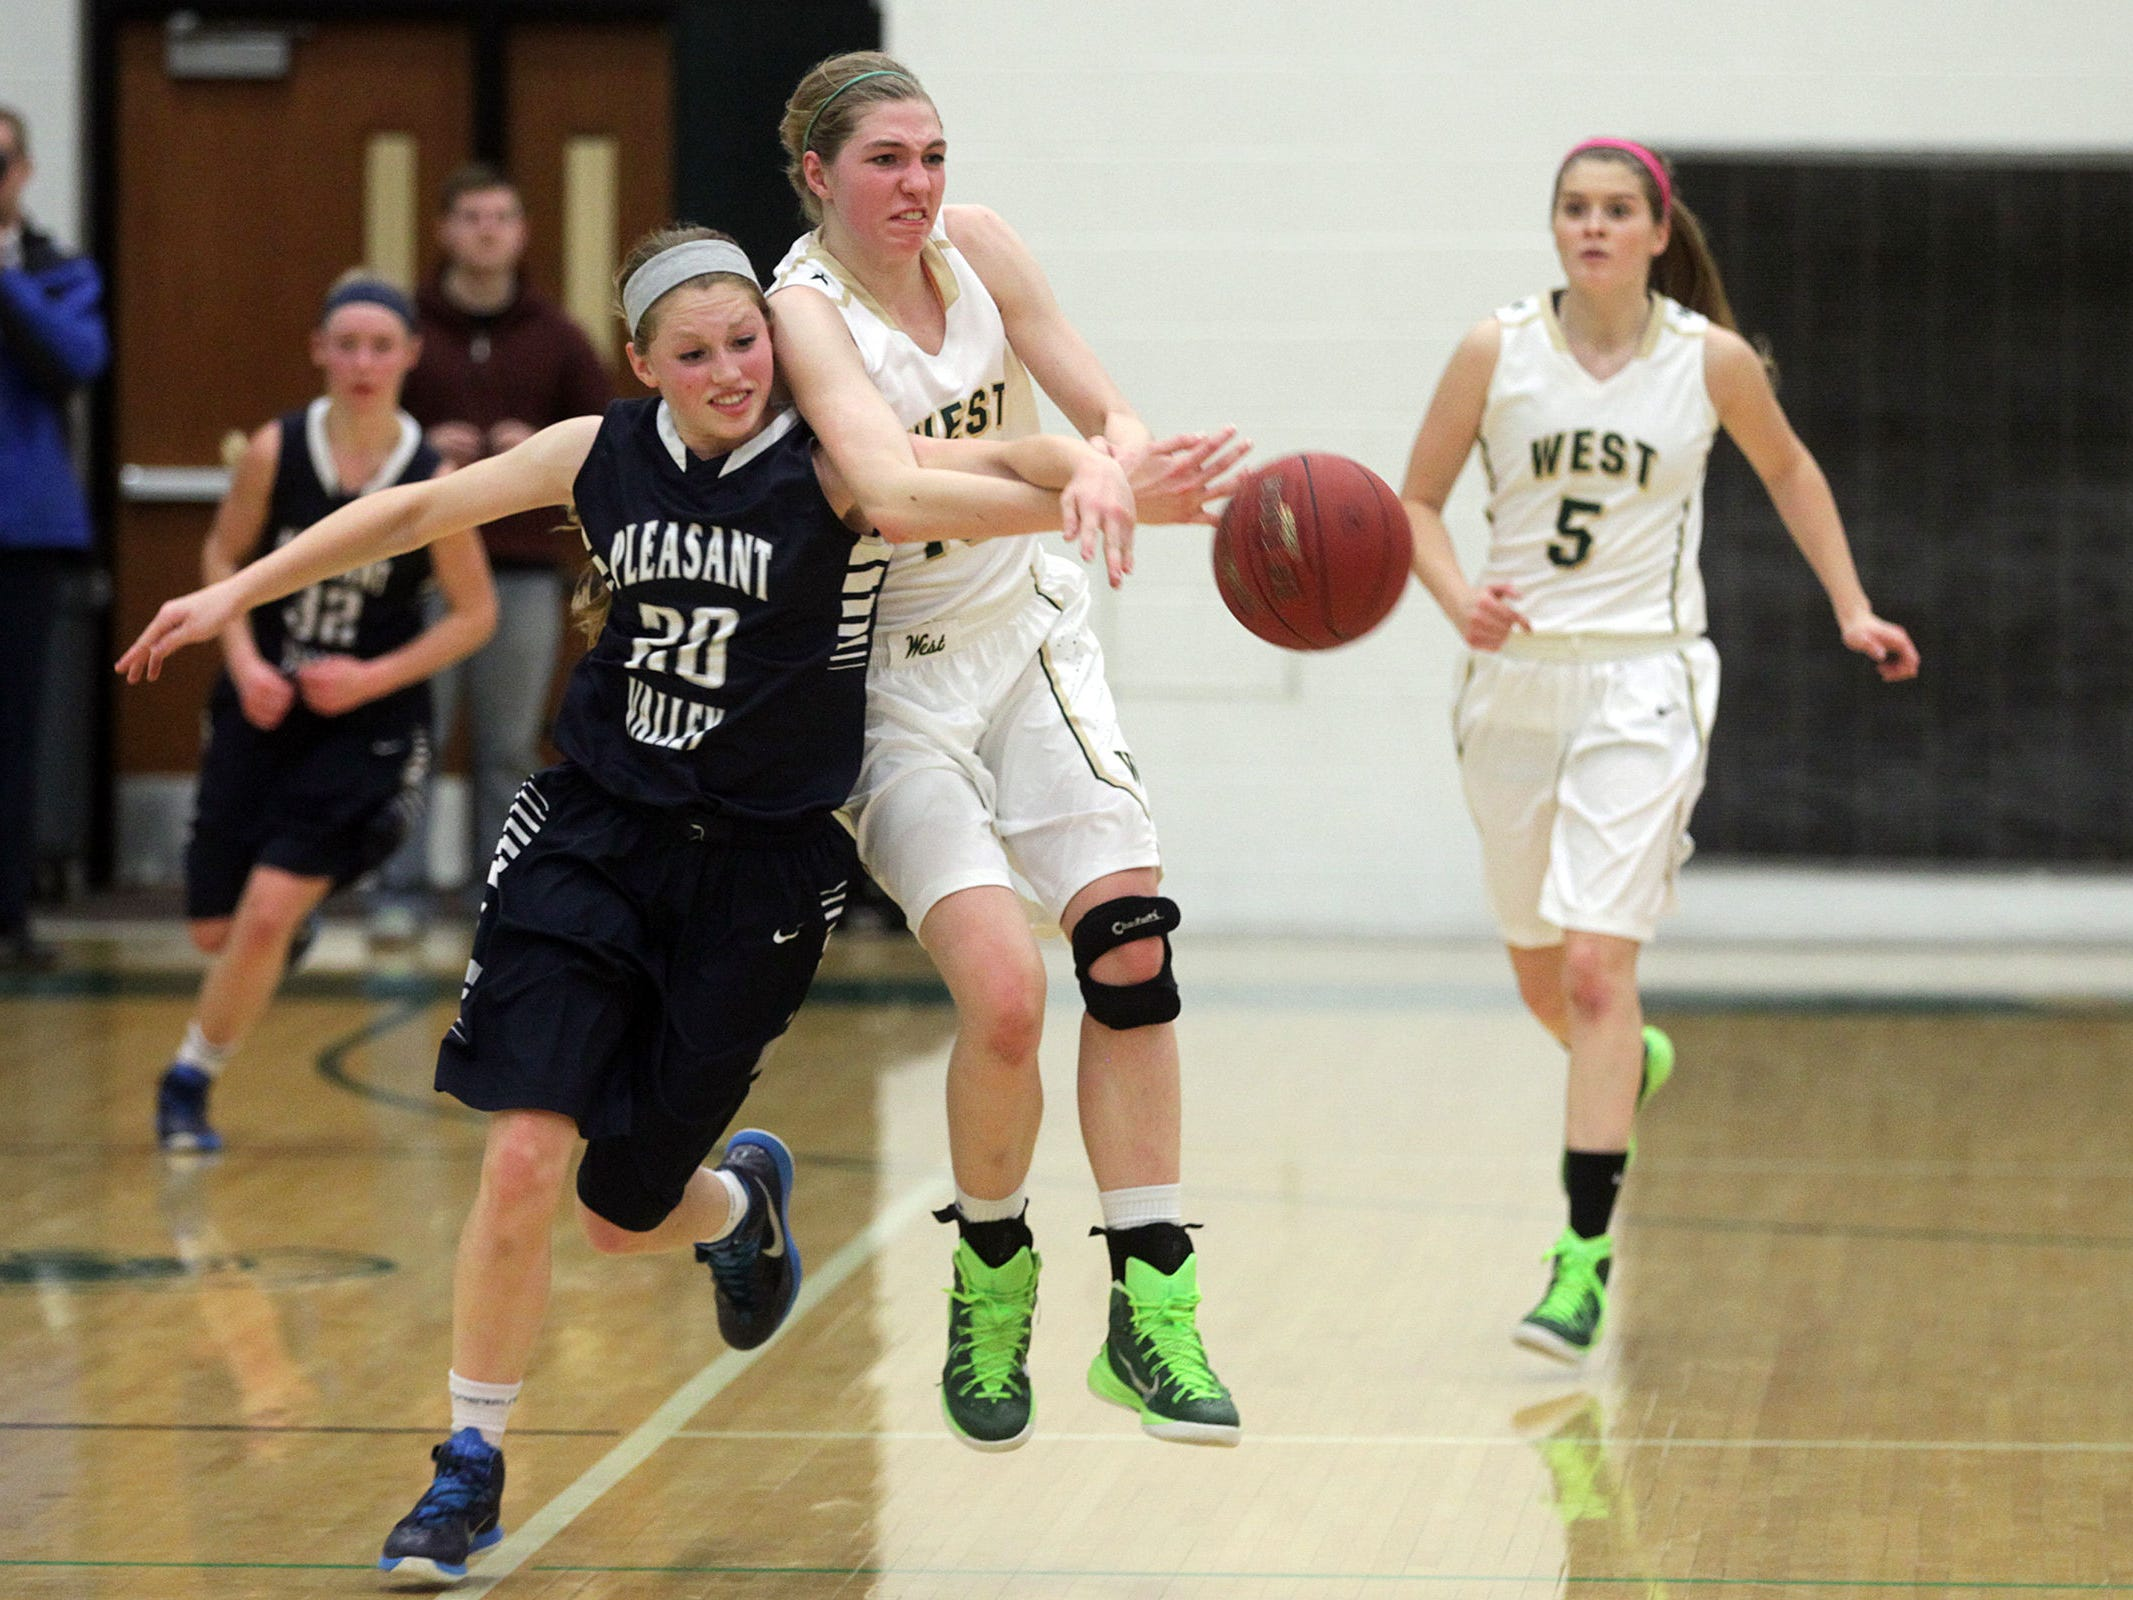 West High's Ali Tauchen steals the ball from Pleasant Valley's Kira Arthofer during their Class 5A regional final on Tuesday, Feb. 24, 2015. West High won, 45-27, to advance to the state tournament. David Scrivner / Iowa City Press-Citizen